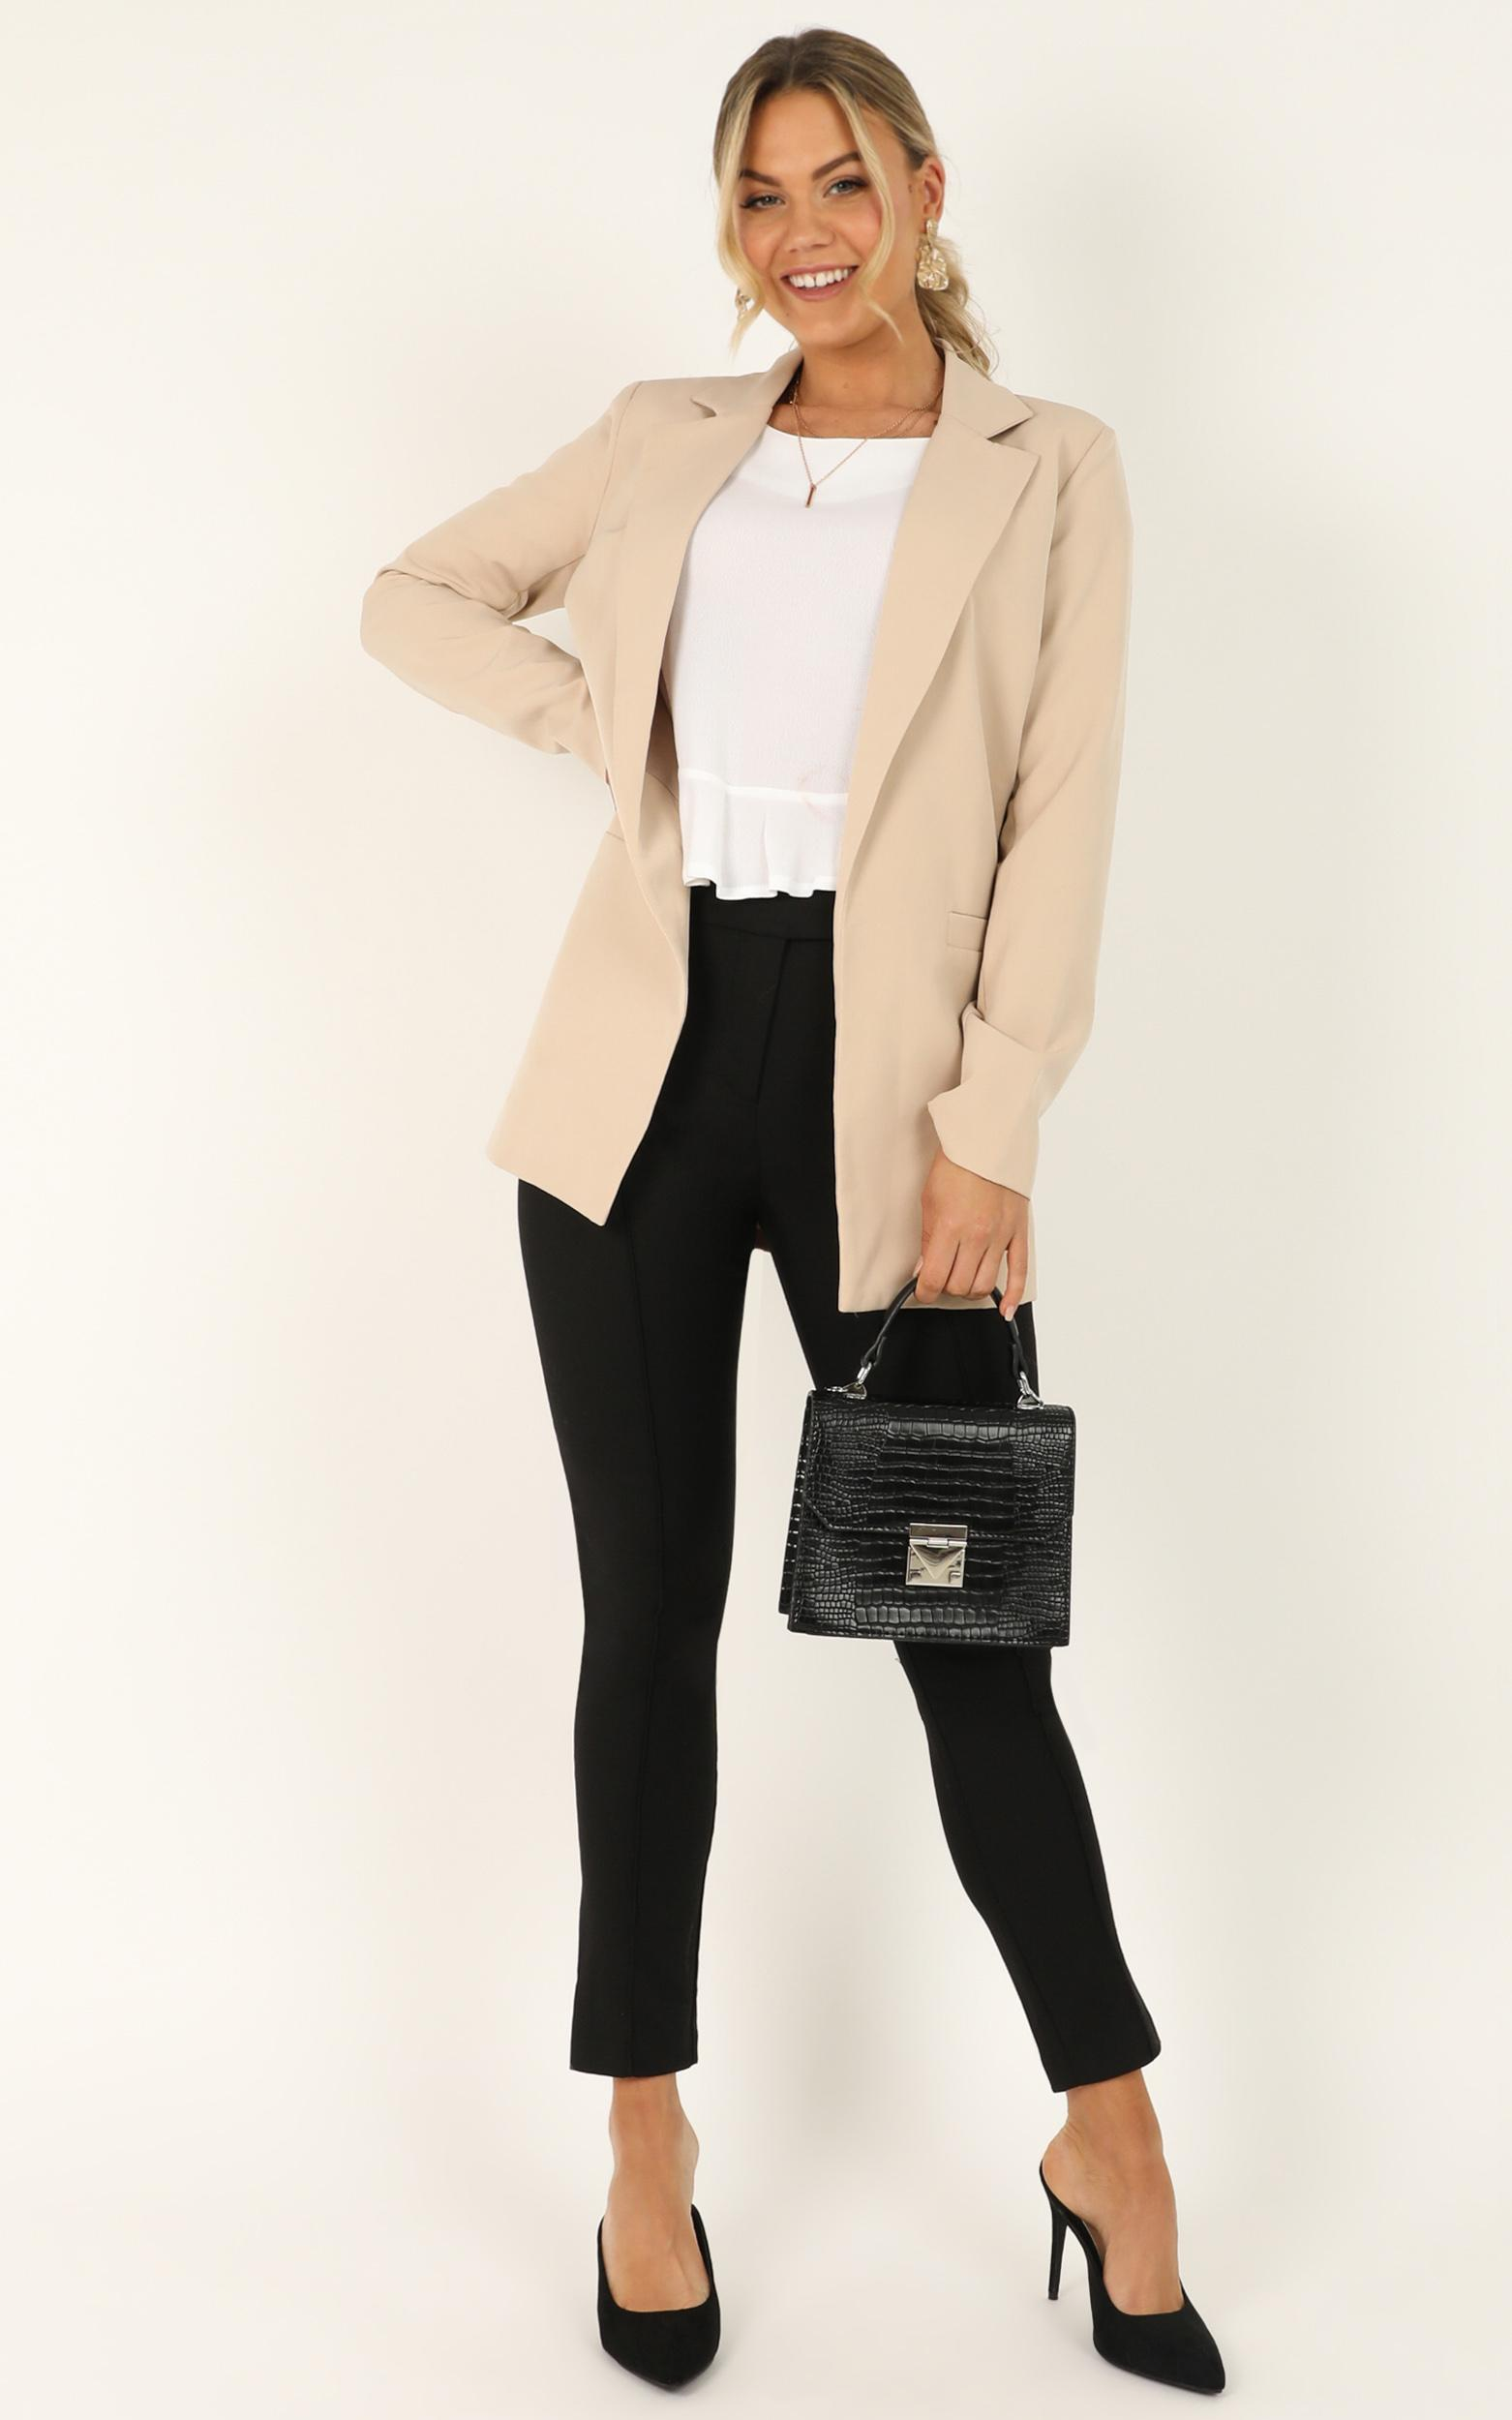 Inquisitive lady Blazer in beige - 20 (XXXXL), Beige, hi-res image number null